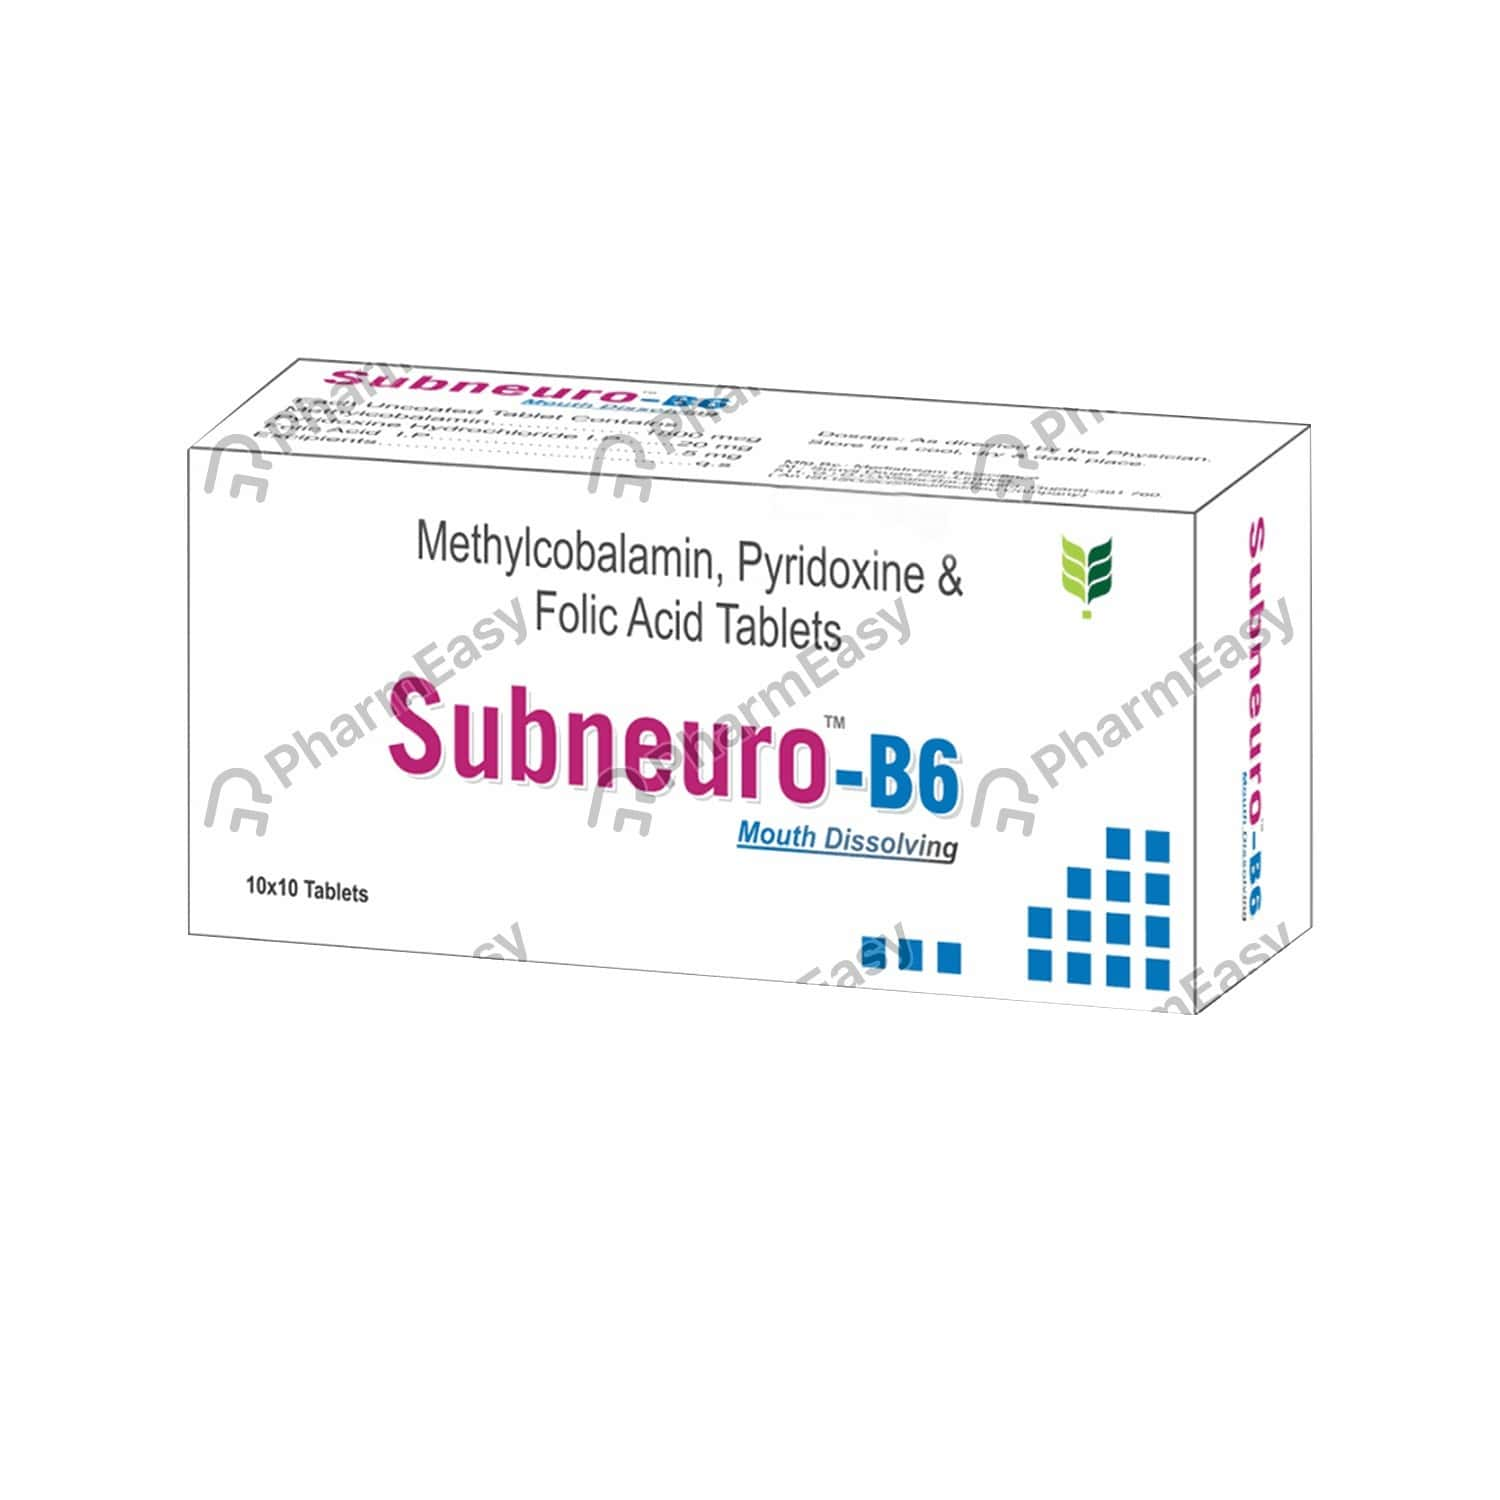 Subneuro B6 Strip Of 10 Tablets